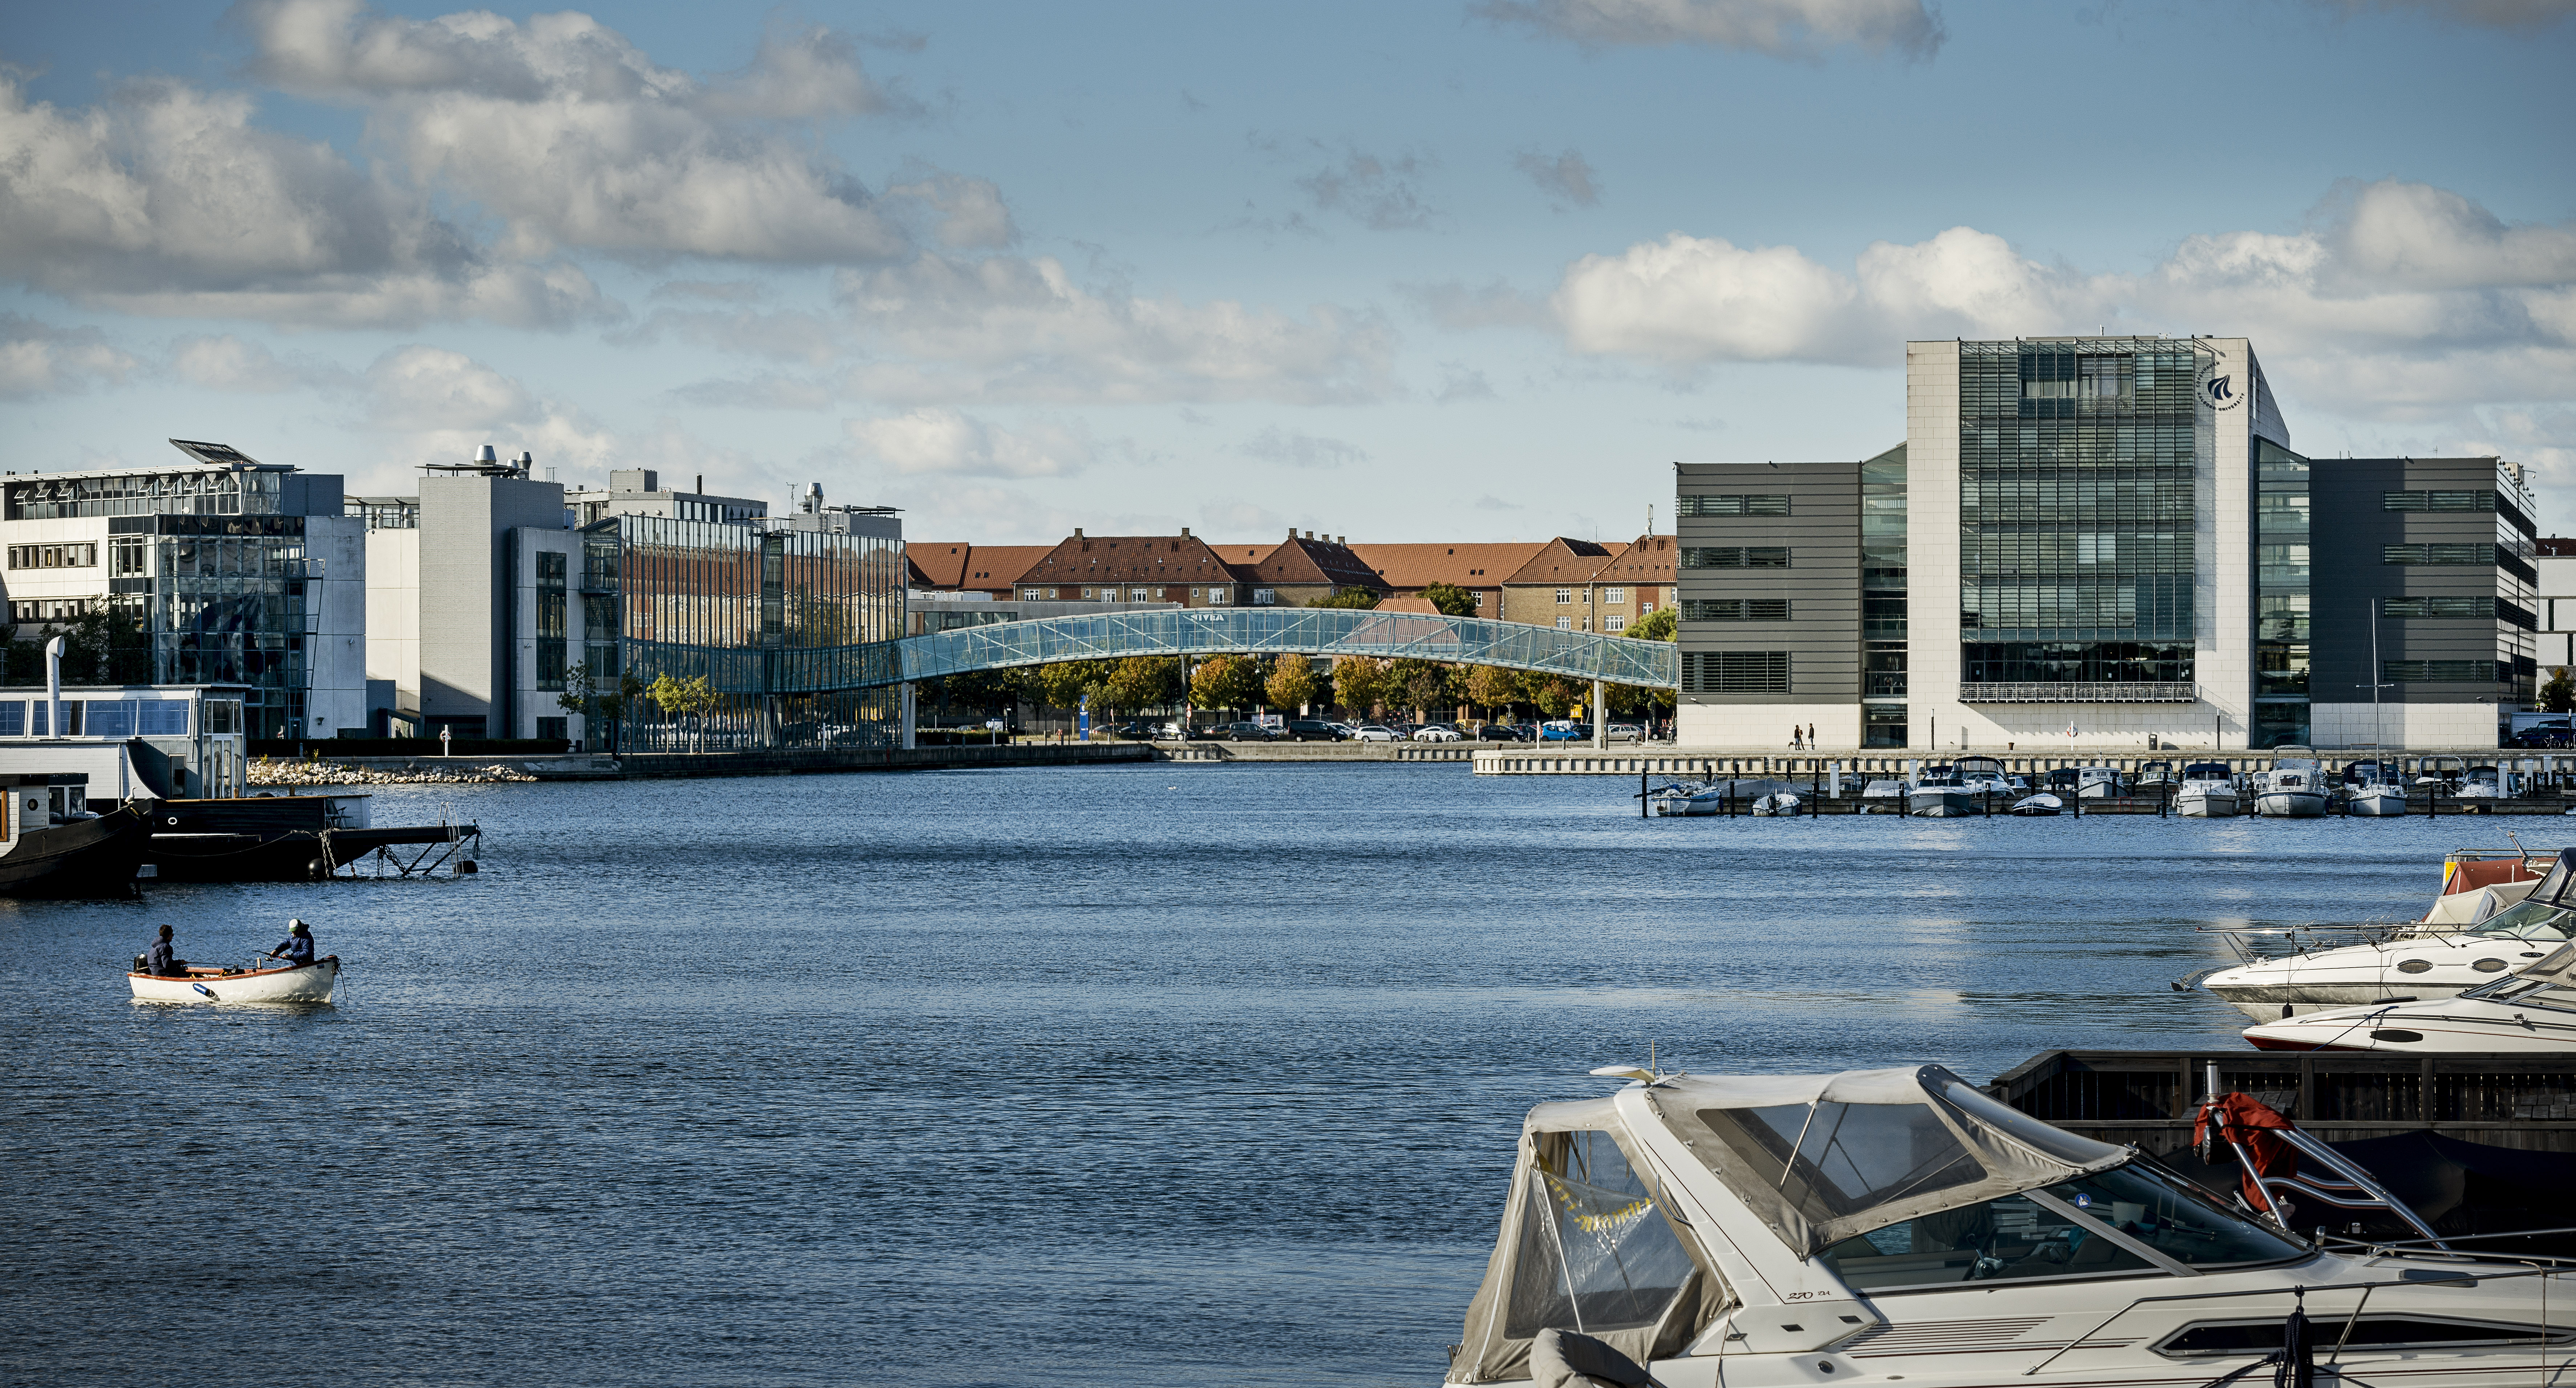 AAU CPH hosts the biggest nordic congress for educational research